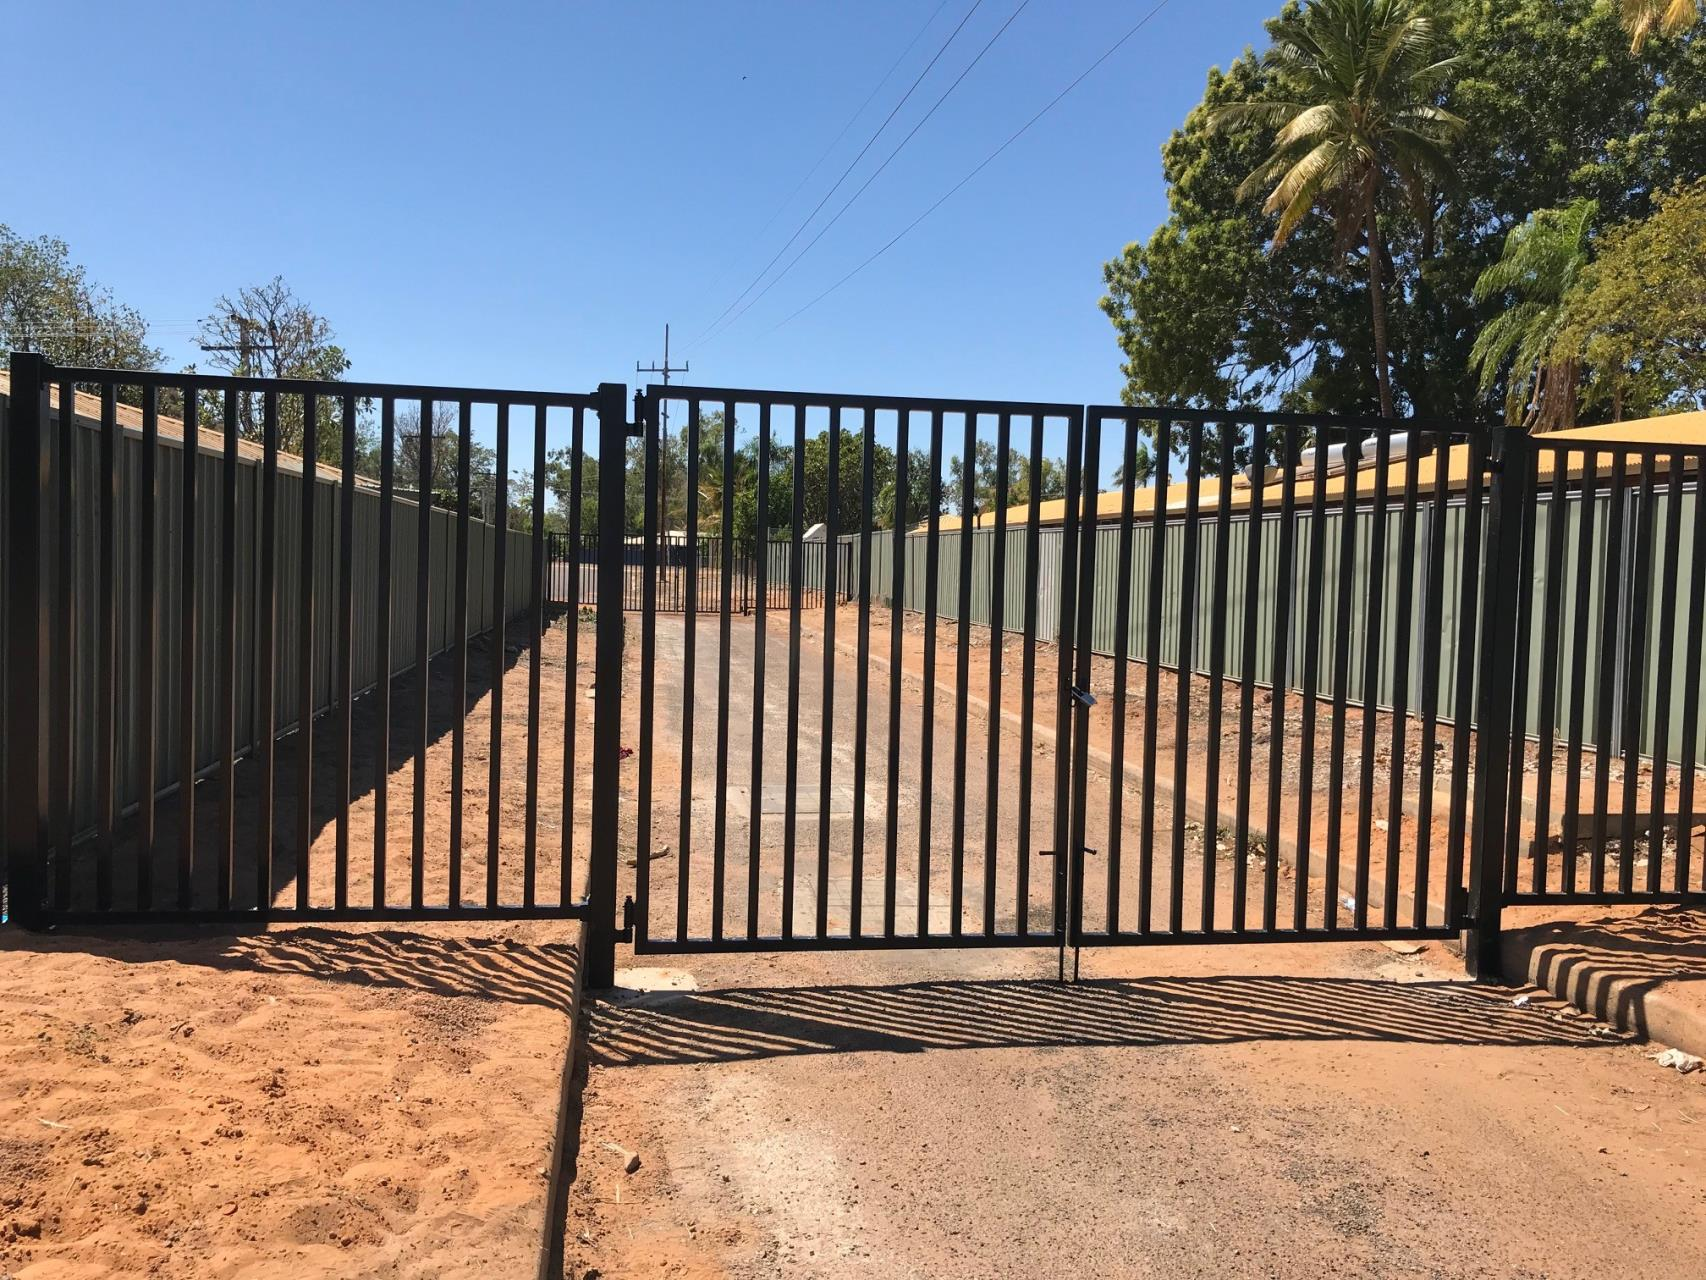 Fencing Installed on Beefwood St